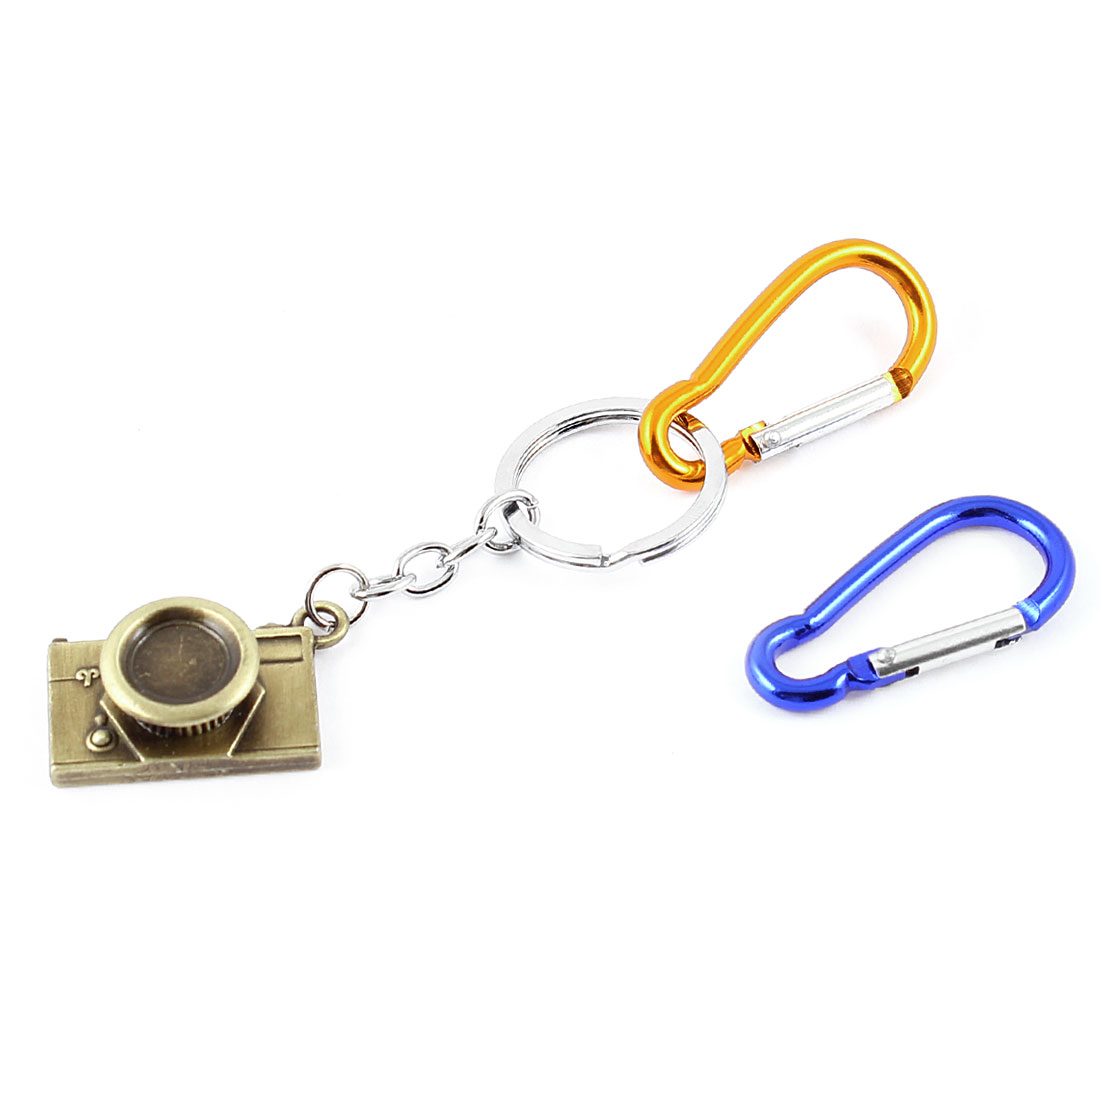 Camera Pendant Split Key Ring Keychain Carabiner Bag Decoration Orange Blue 3 in 1